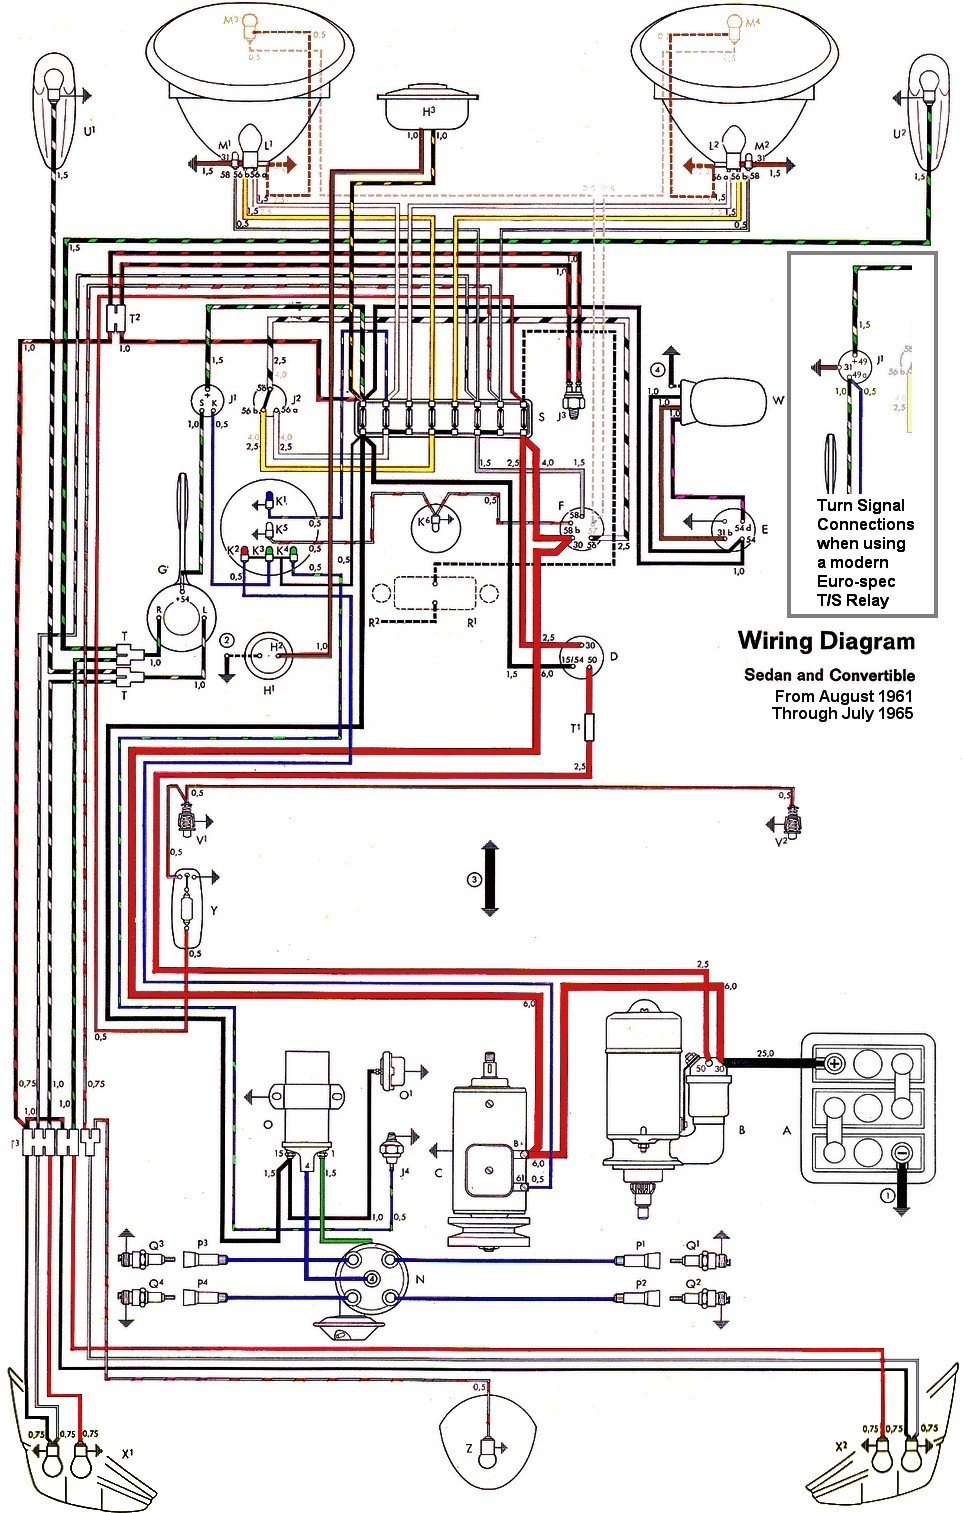 bug_62 65withinset vw wiring harness diagram cj7 wiring harness diagram \u2022 wiring 2002 vw beetle wiring diagram at fashall.co